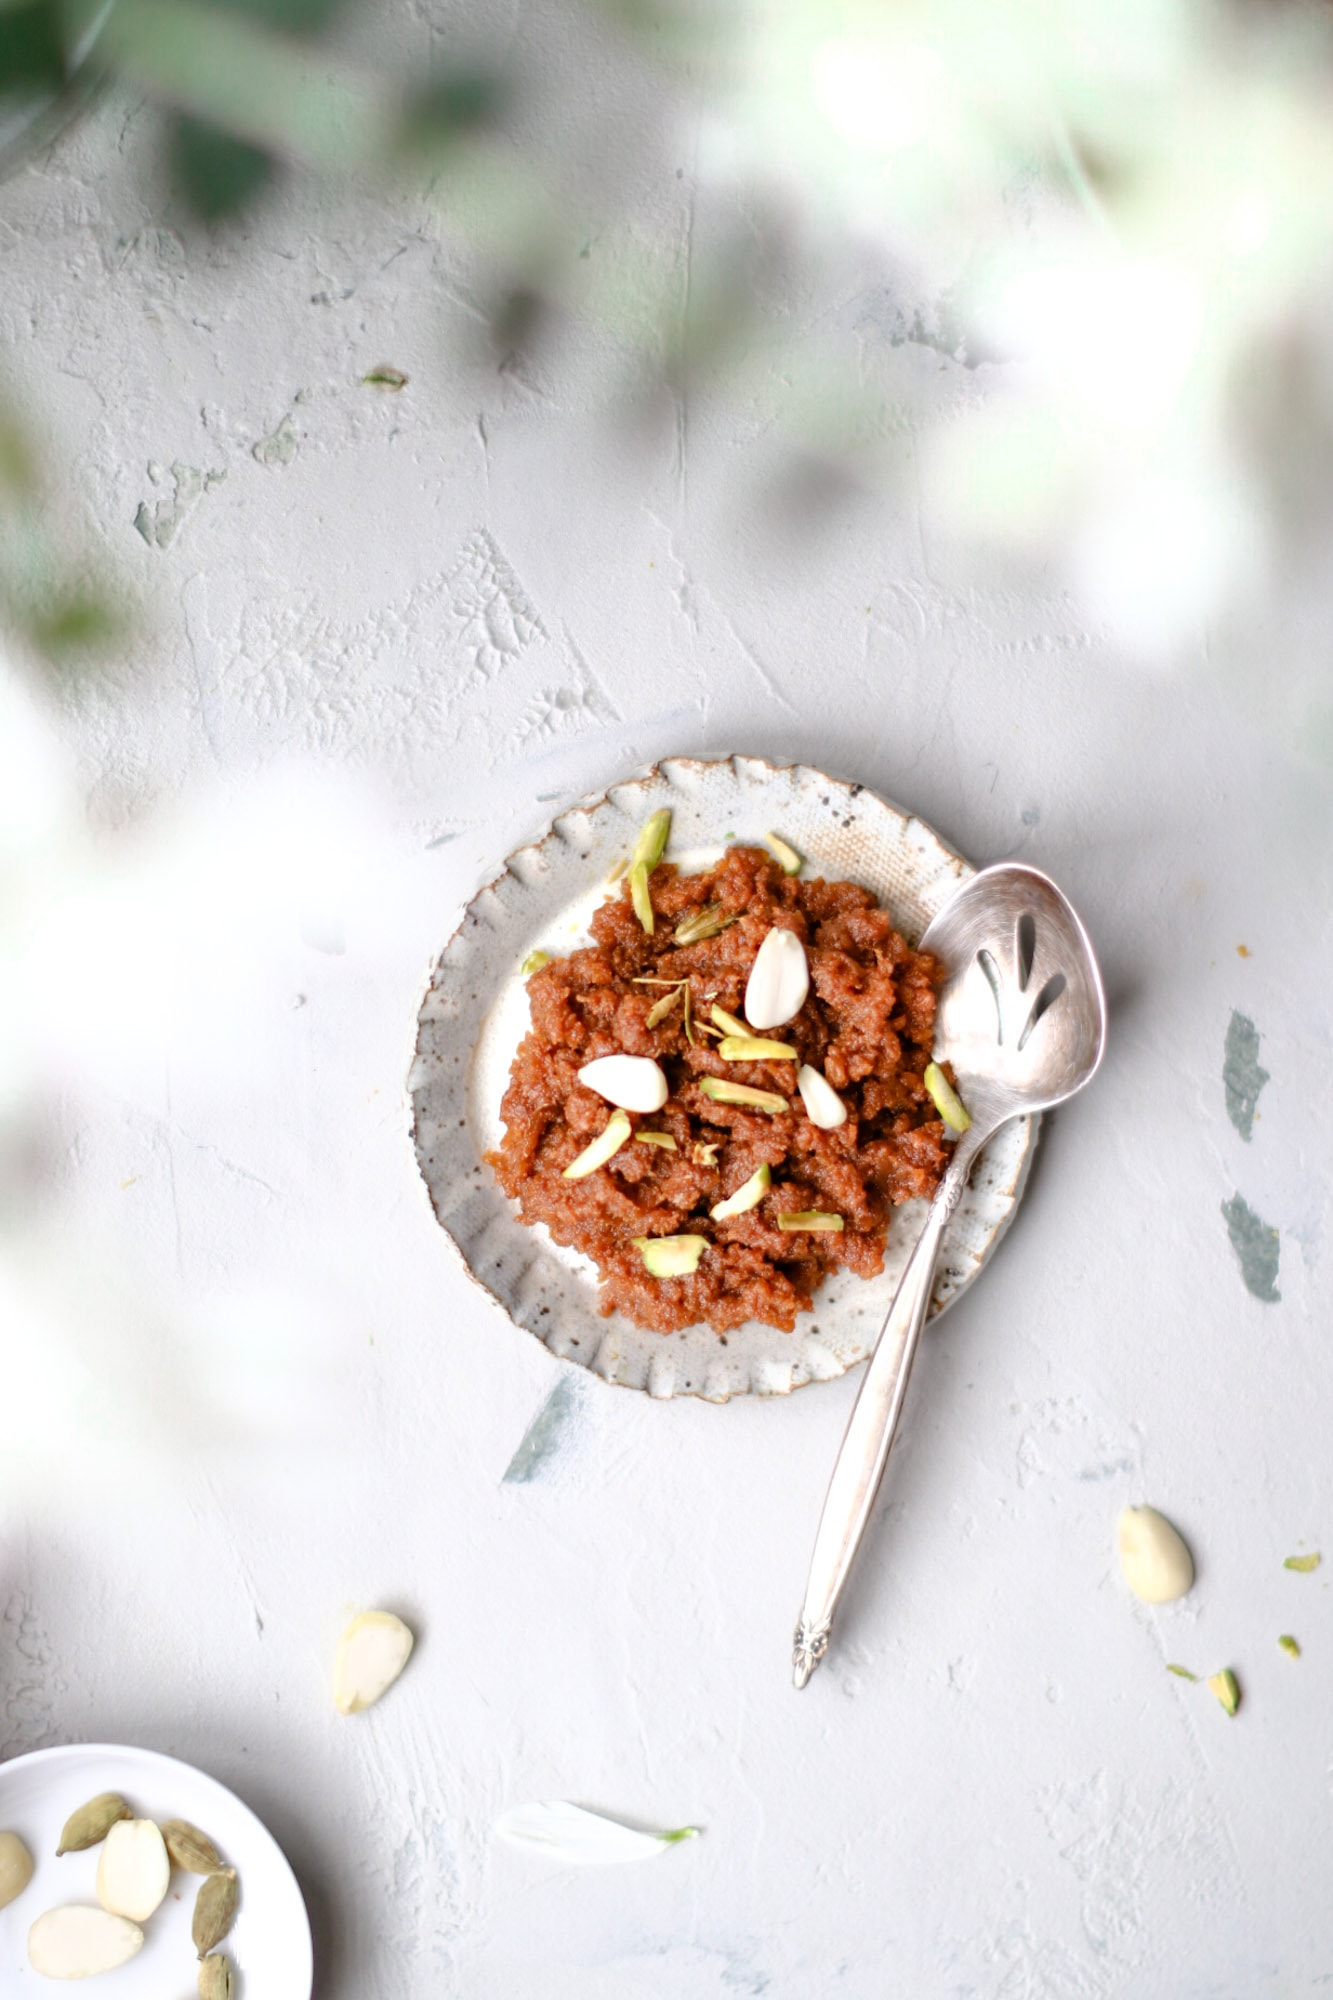 Close up of a plate of Instant Pot Carrot Halwa with a silver spoon on the side.